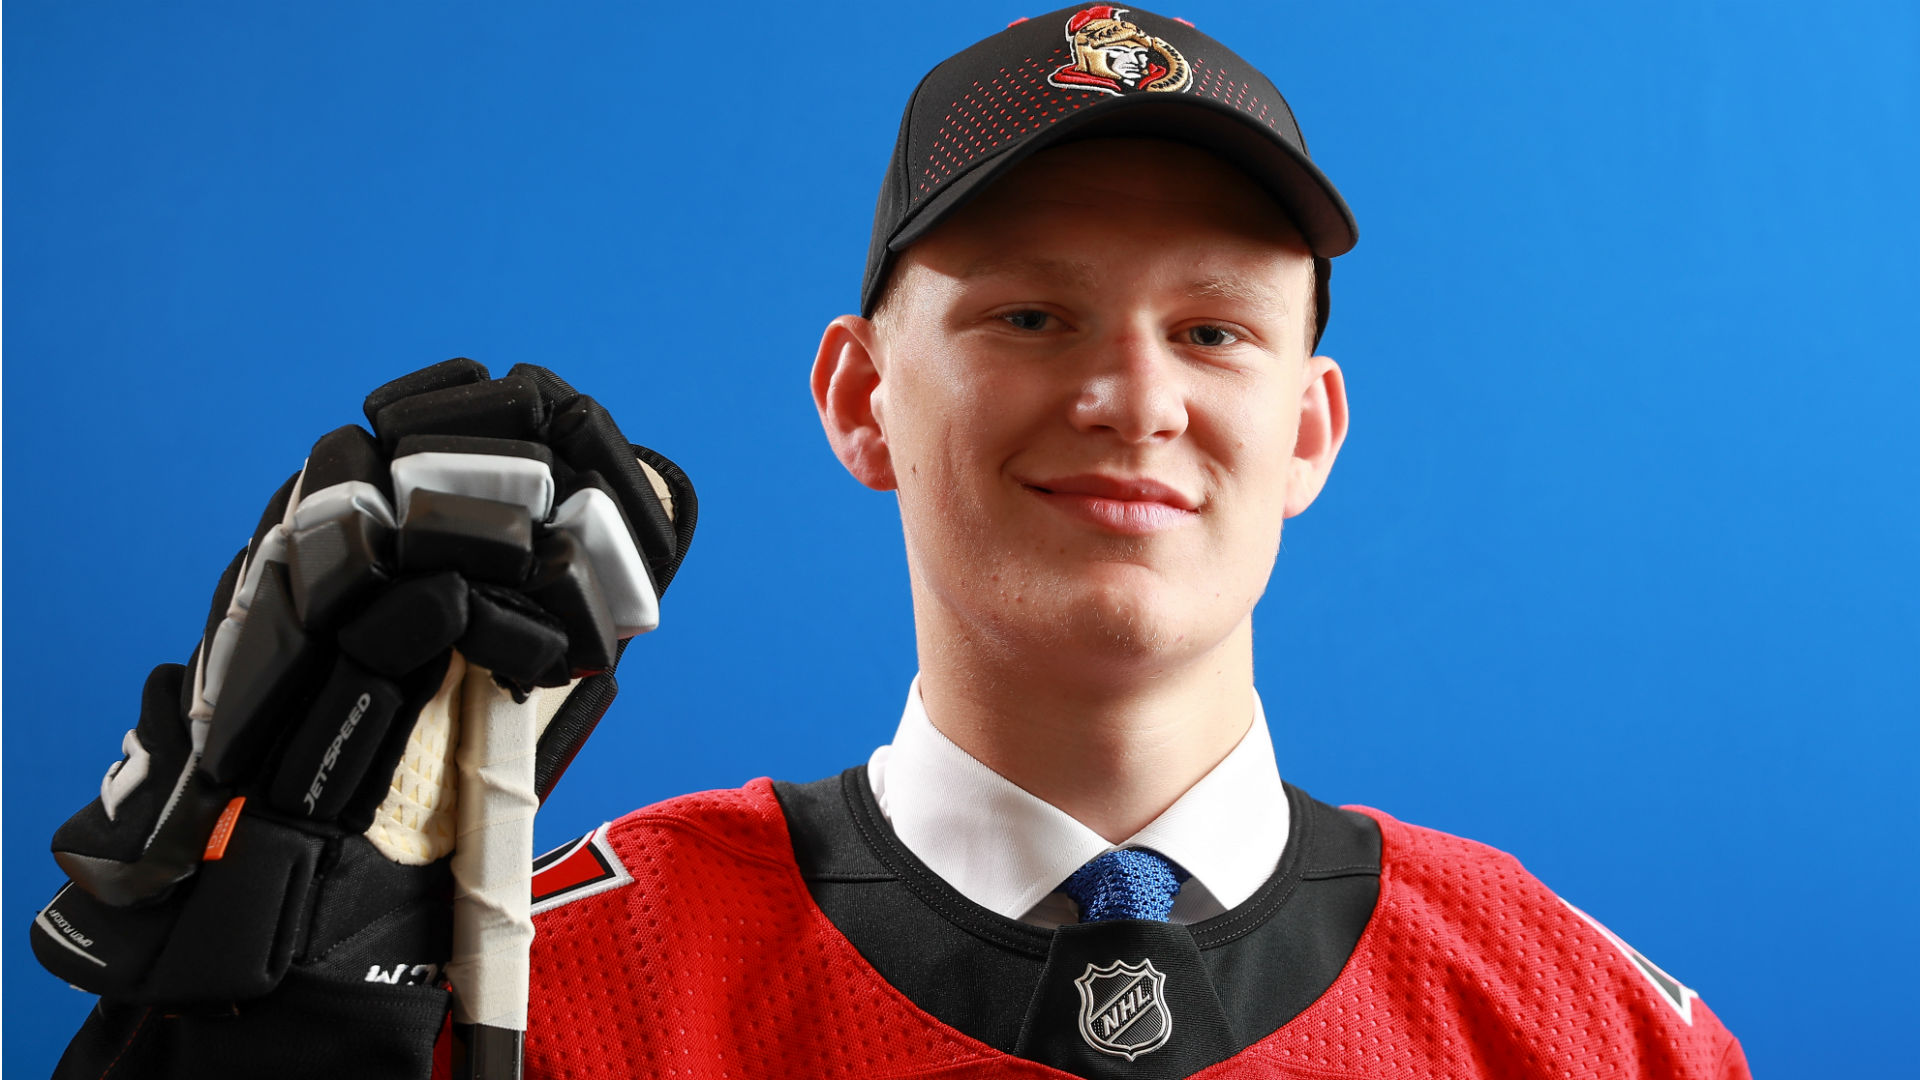 Brady-Tkachuk-101718-usnews-getty-ftr